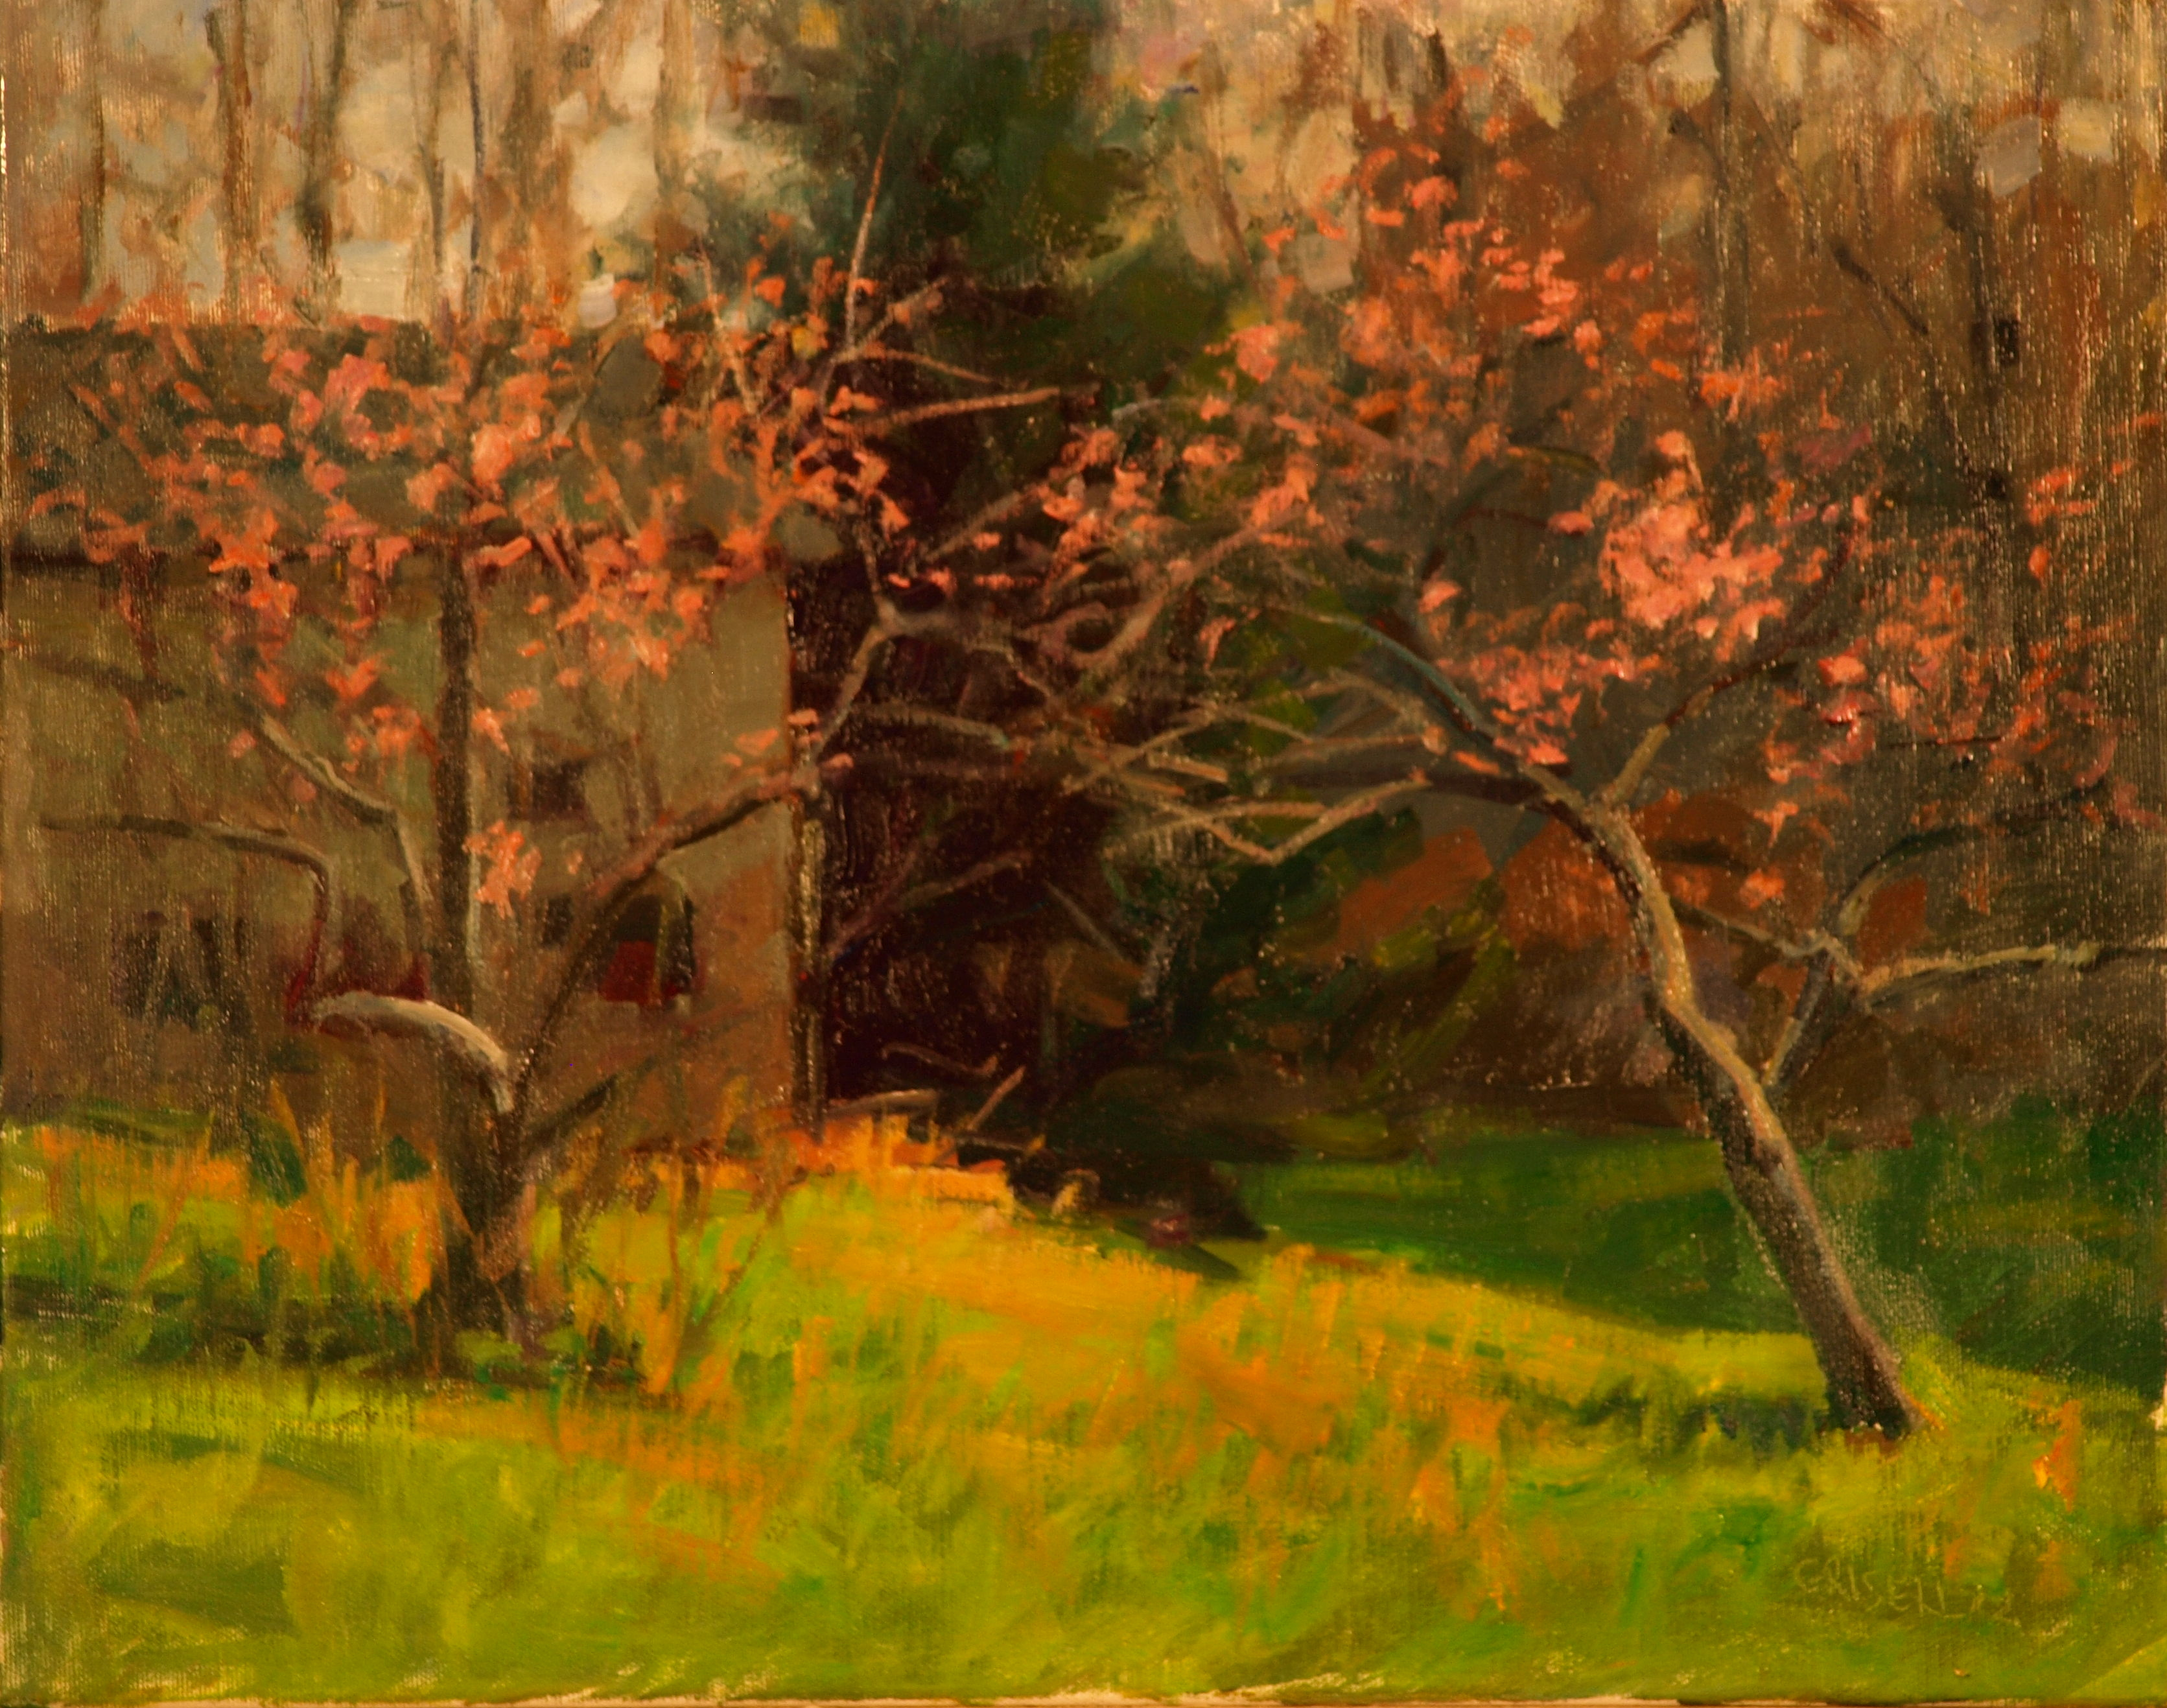 Peach Blossoms, Oil on Canvas, 16 x 20 Inches, by Susan Grisell, $450